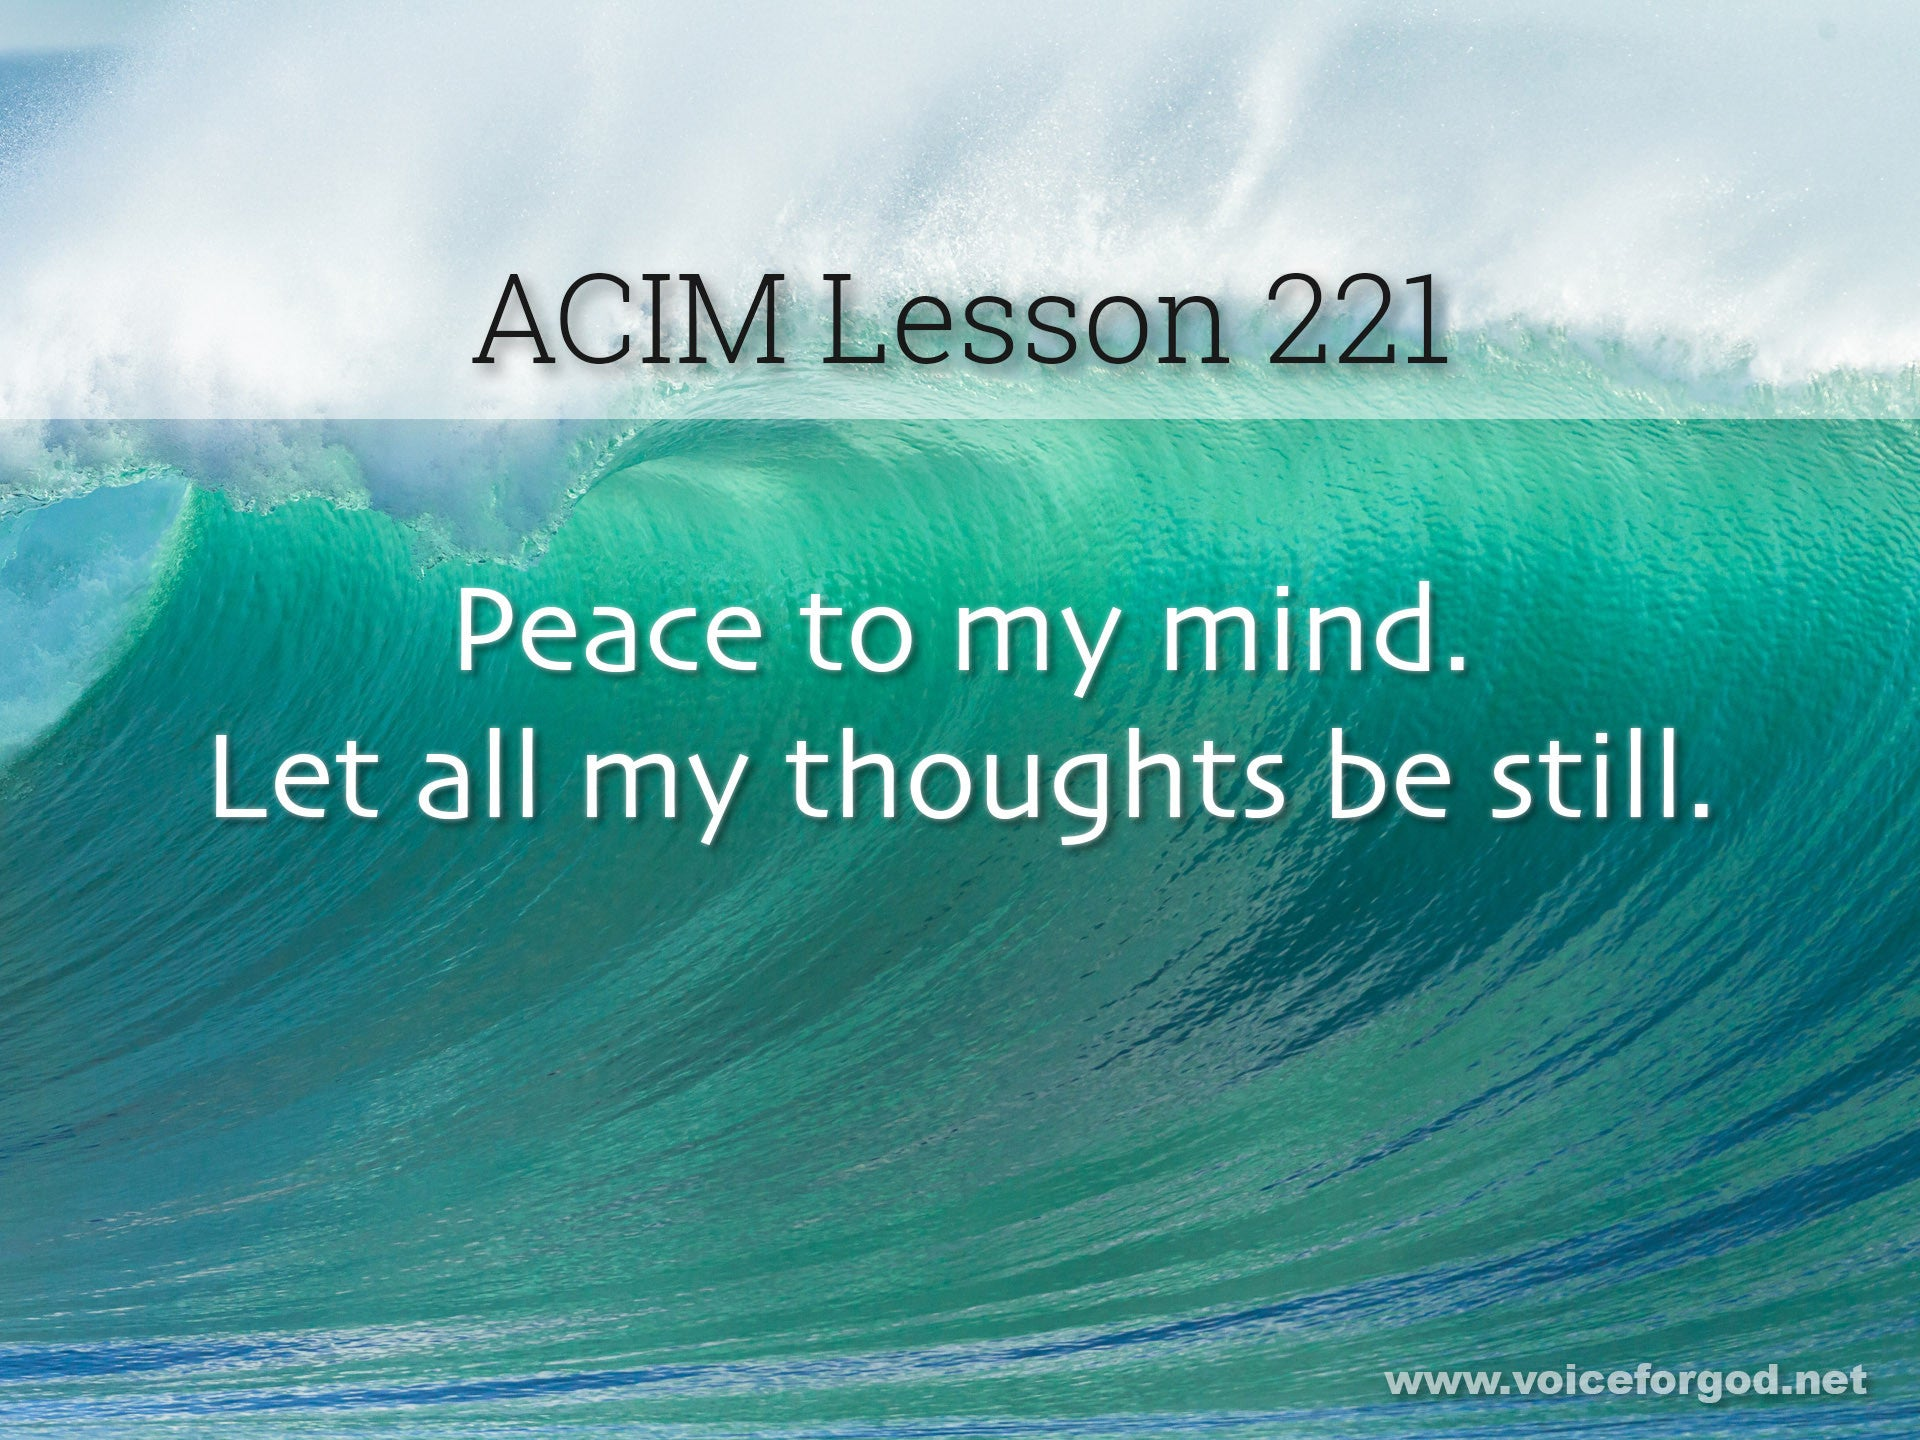 ACIM Lesson 221 - A Course in Miracles Workbook Lesson 221